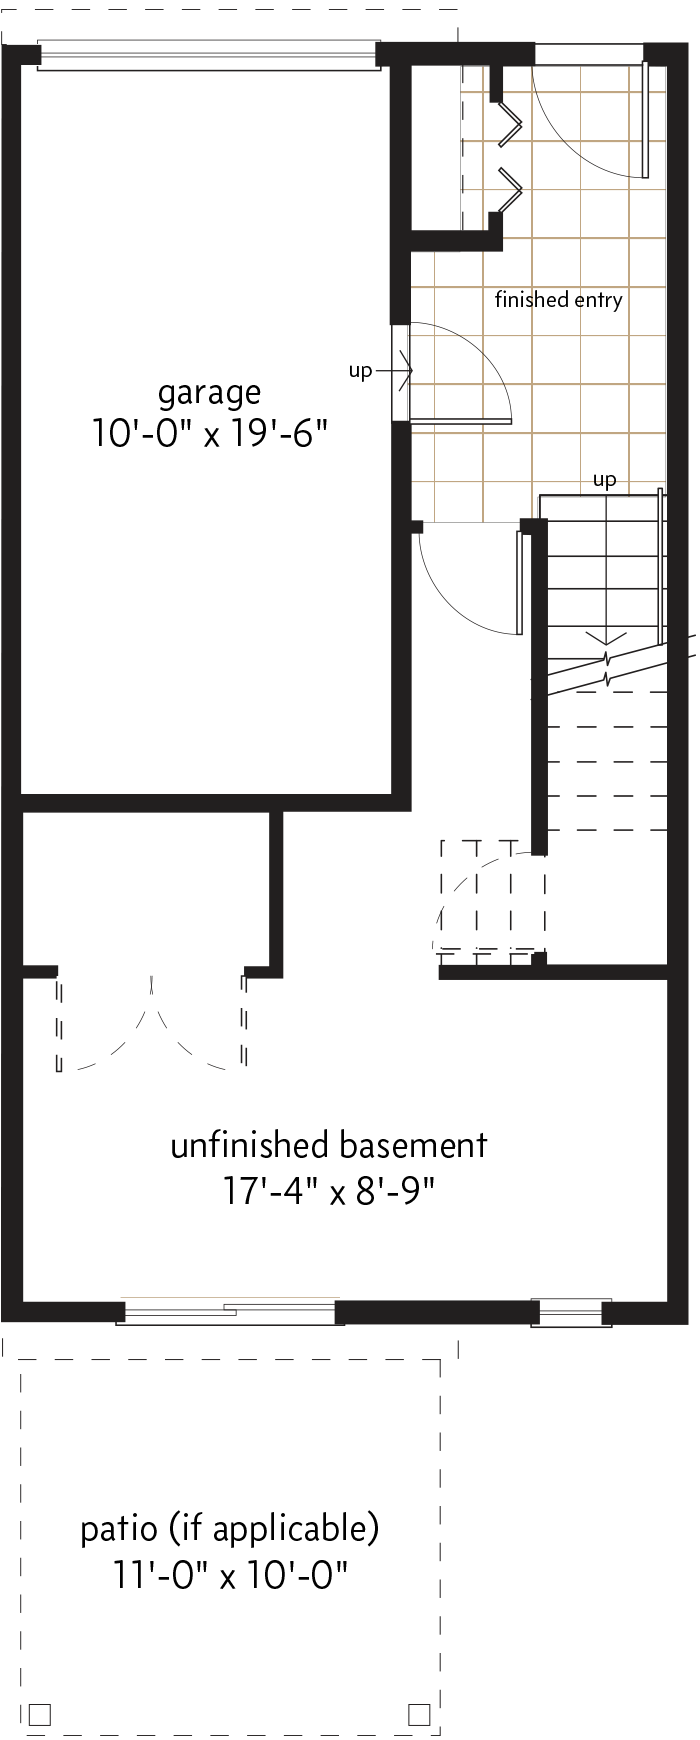 BASEMENT LEVEL  |  92 SQ. FT.